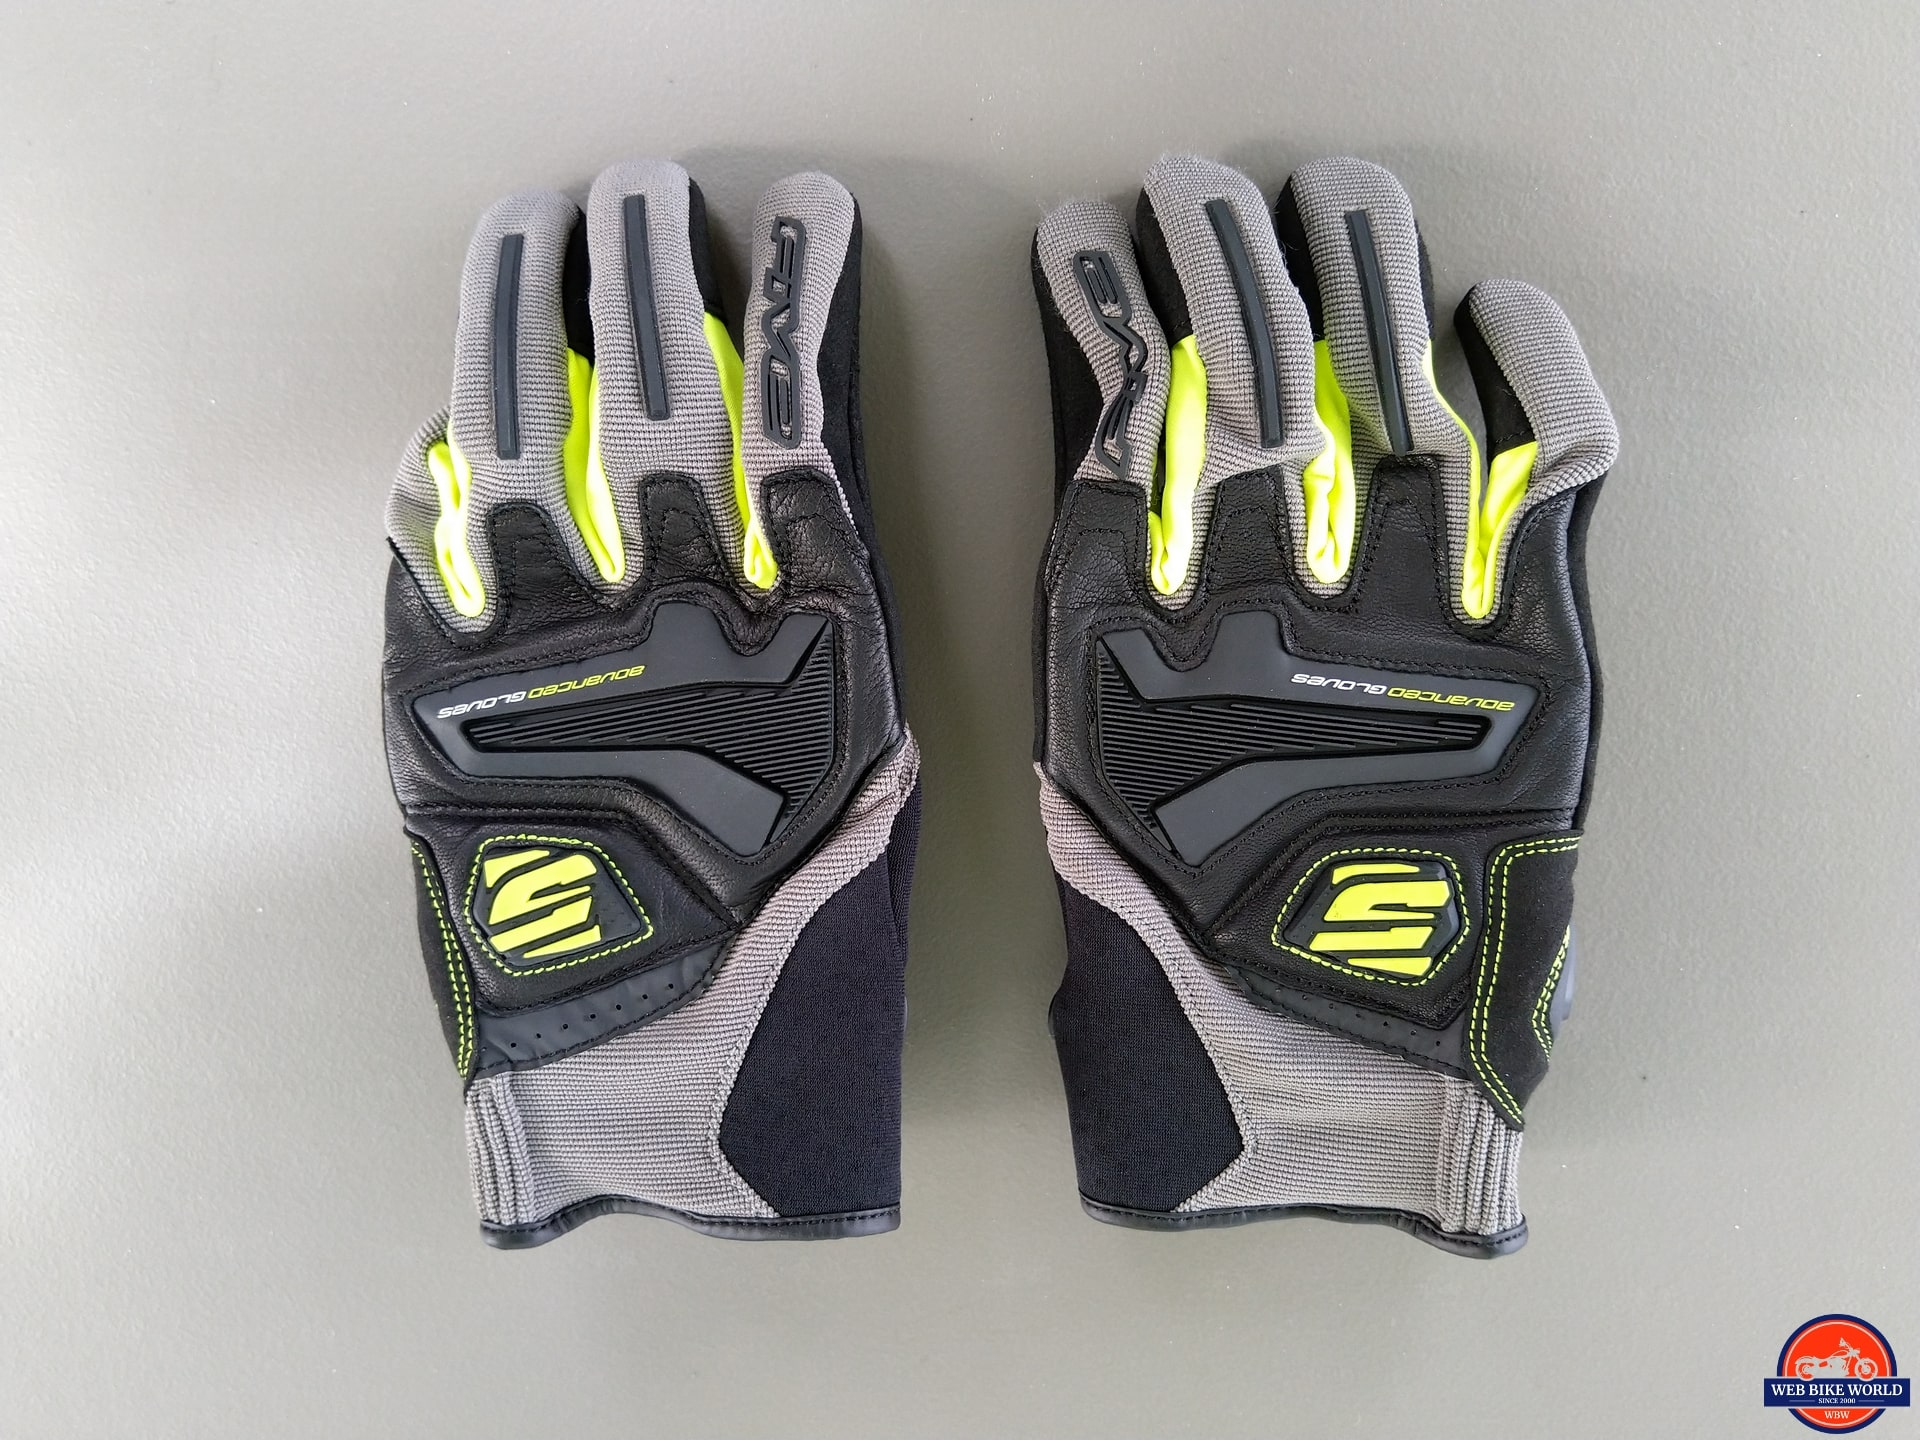 Motorcycle Glove Reviews - Hands On Reviews for Over 20 Years